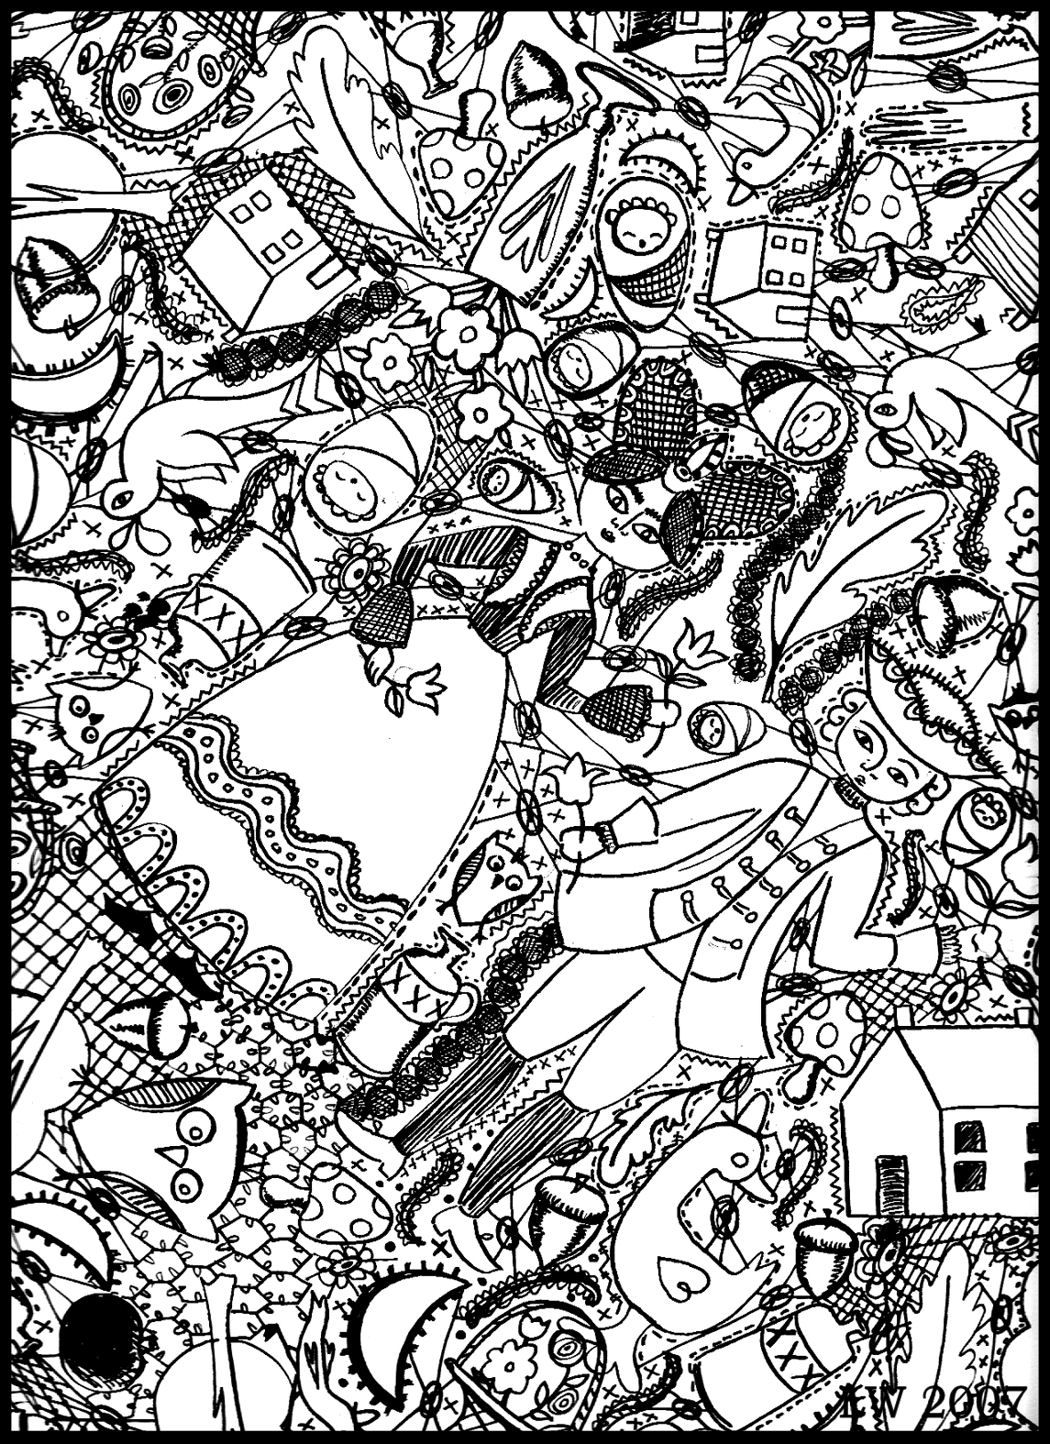 coloring sheet graffiti coloring pages free doodle art coloring pages coloring home graffiti sheet coloring pages coloring